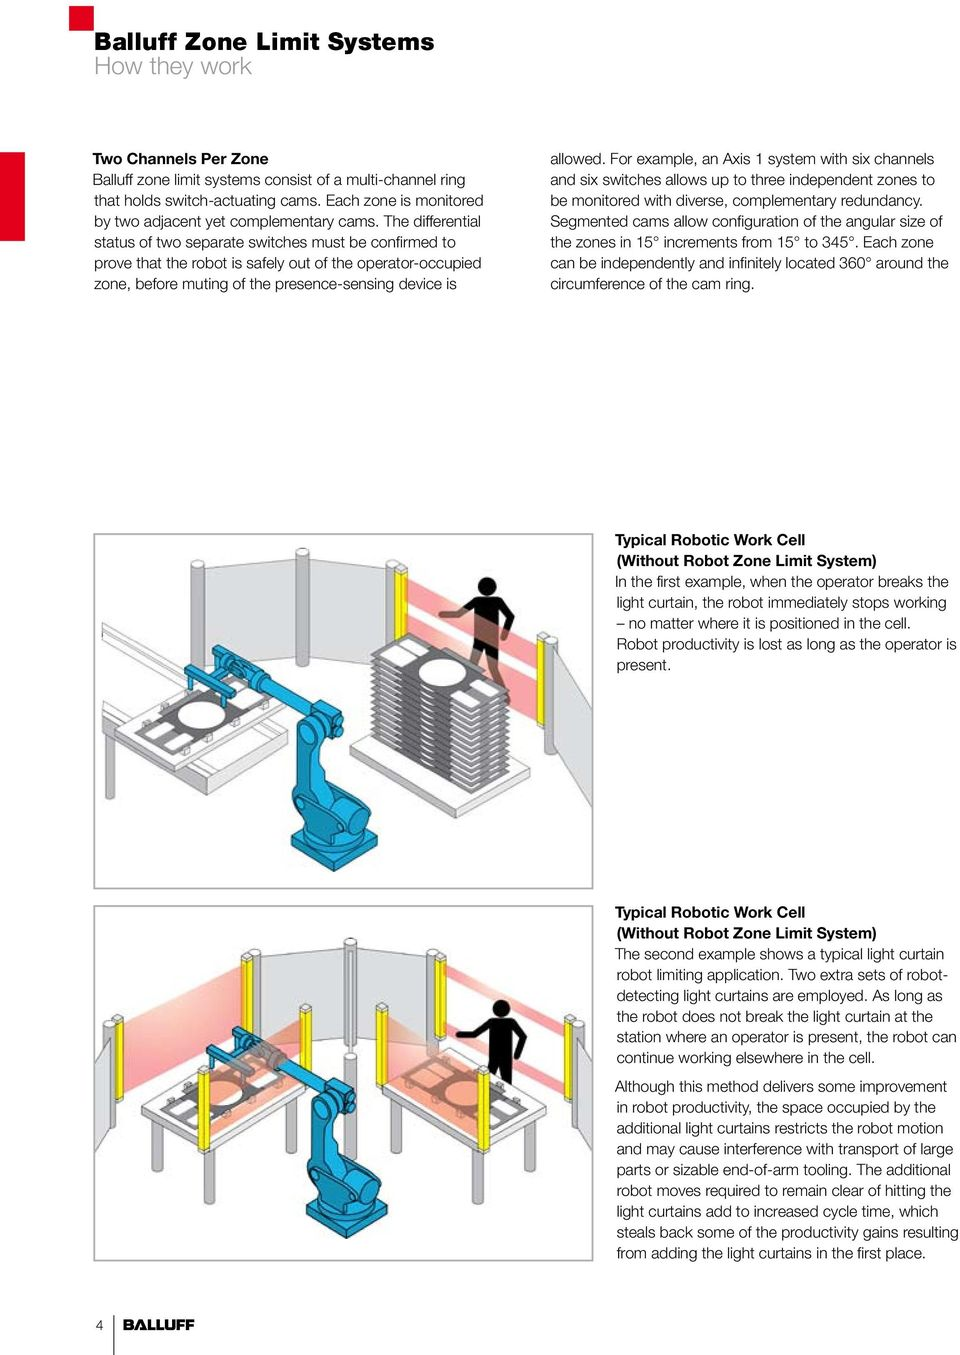 Balluff Pre Engineered Robot Zone Limit Systems For Safety With Wiring Diagram The Differential Status Of Two Separate Switches Must Be Confirmed To Prove That Is